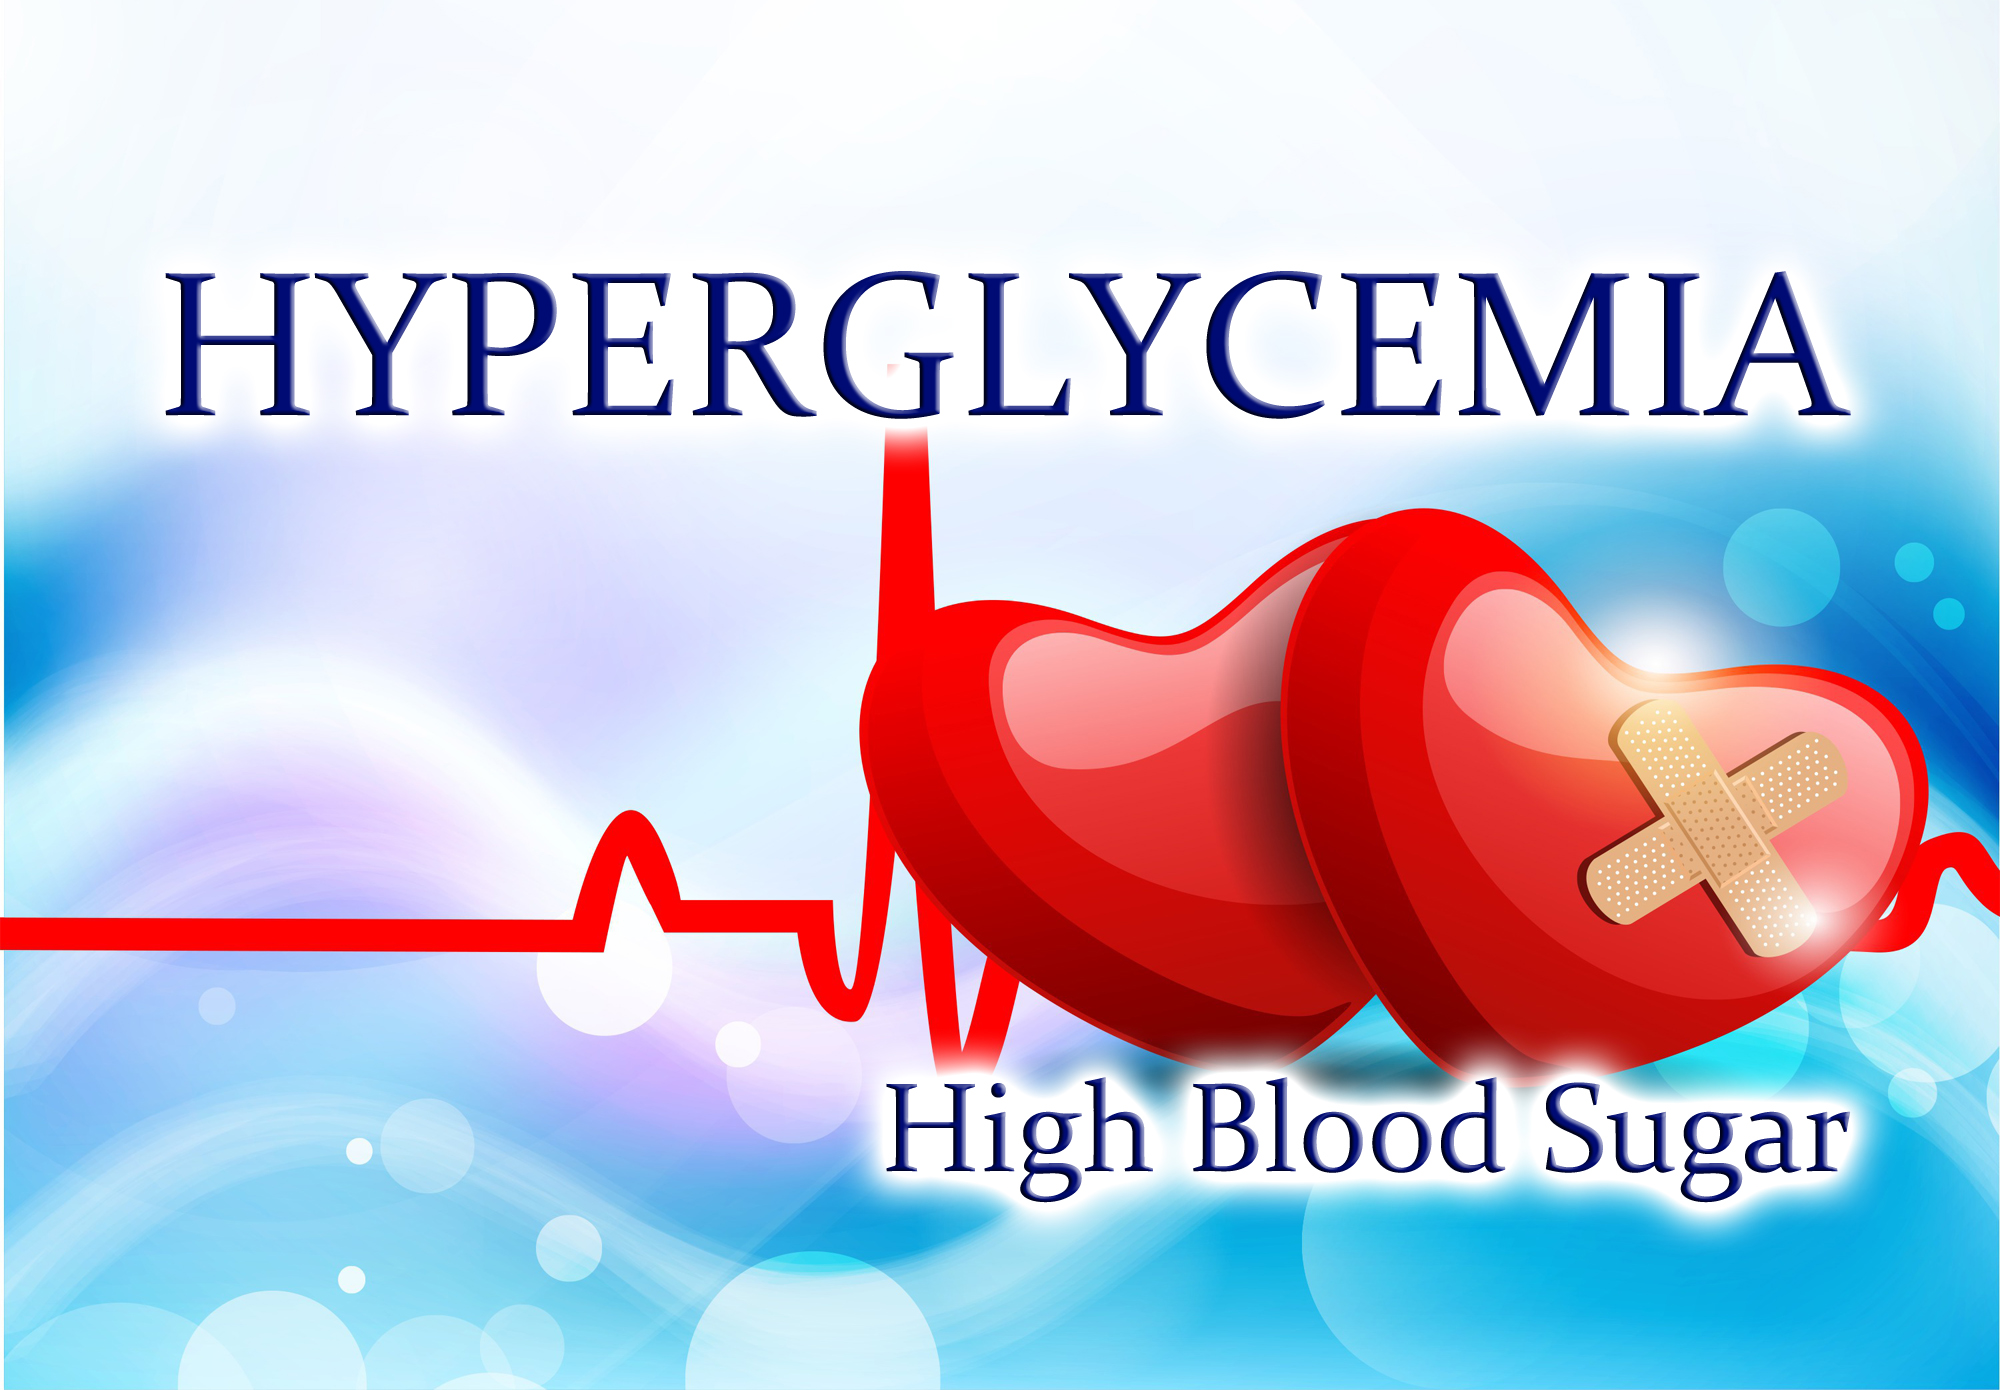 High blood sugar can cause serious complications over time like blindness, nerve, and organ damage.